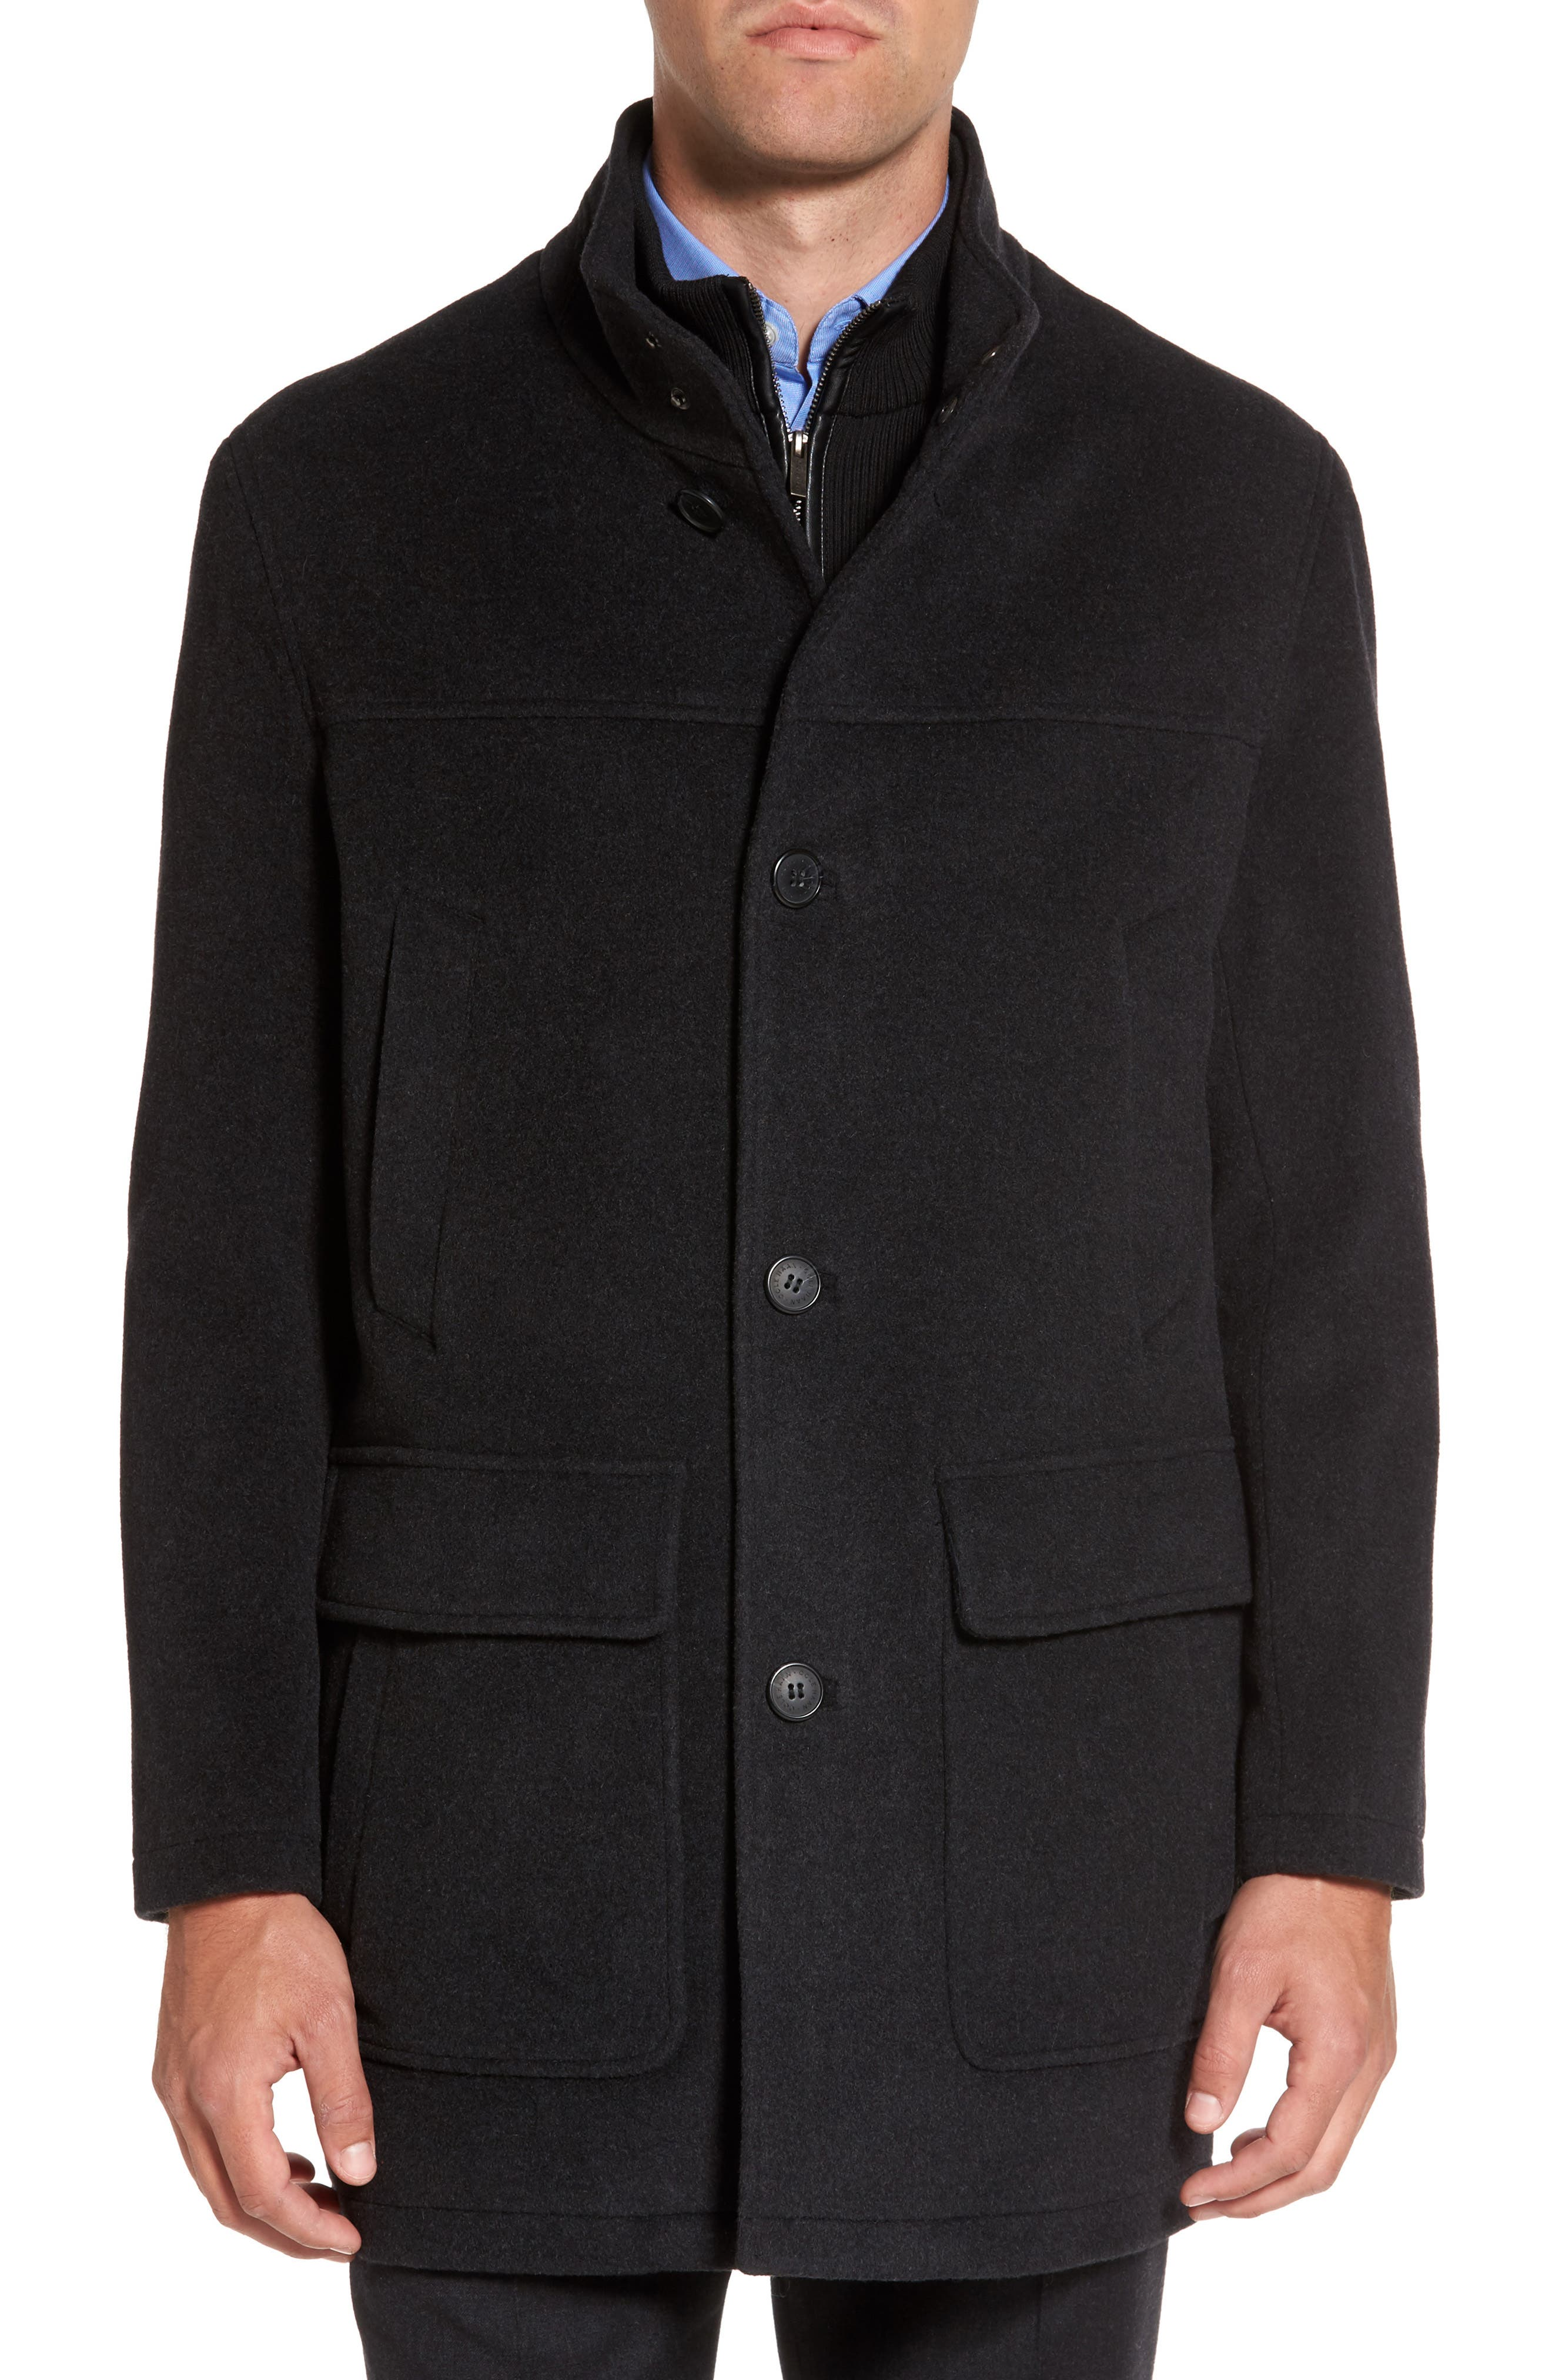 Wool Blend Topcoat with Inset Bib,                             Main thumbnail 3, color,